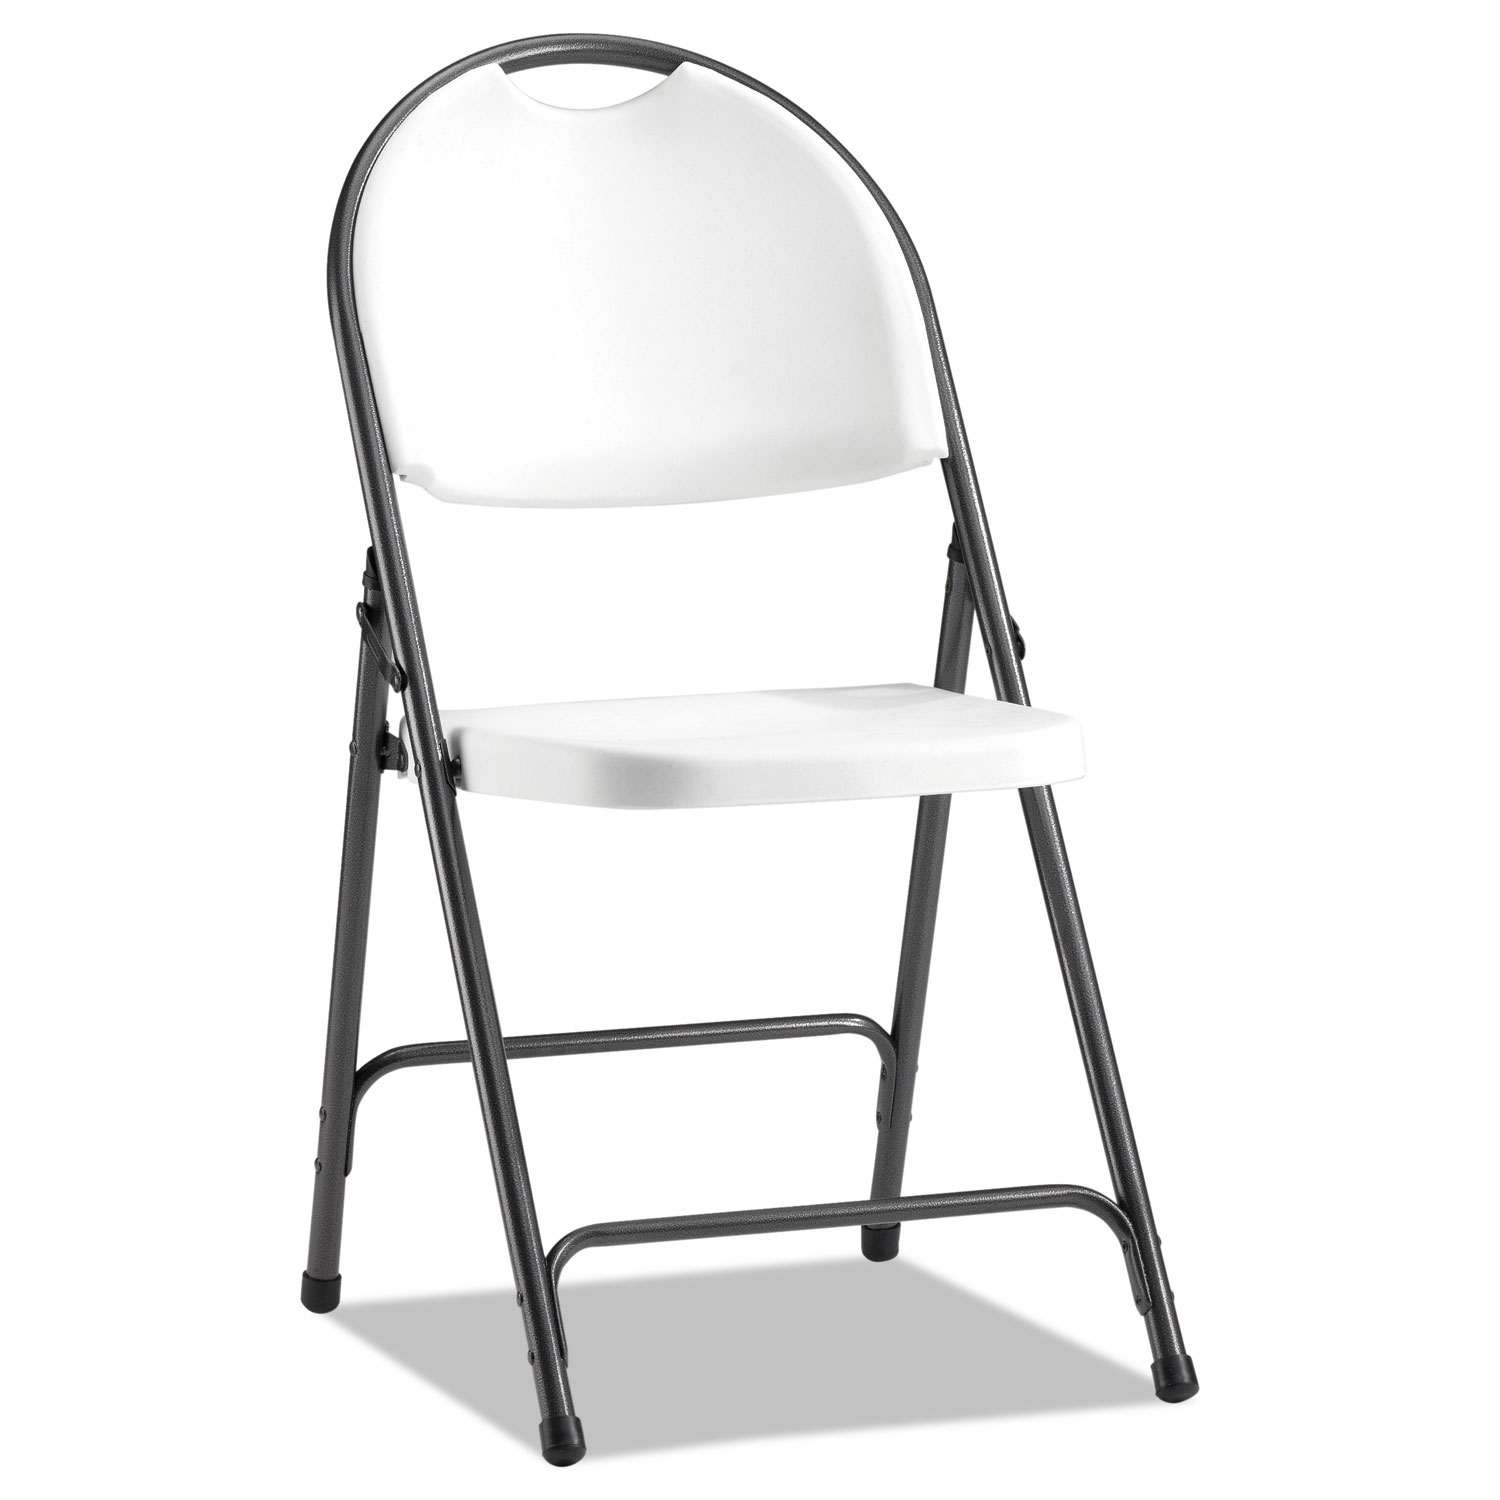 Molded Resin Folding Chair by Alera ALEFR9402 TimeSupplies